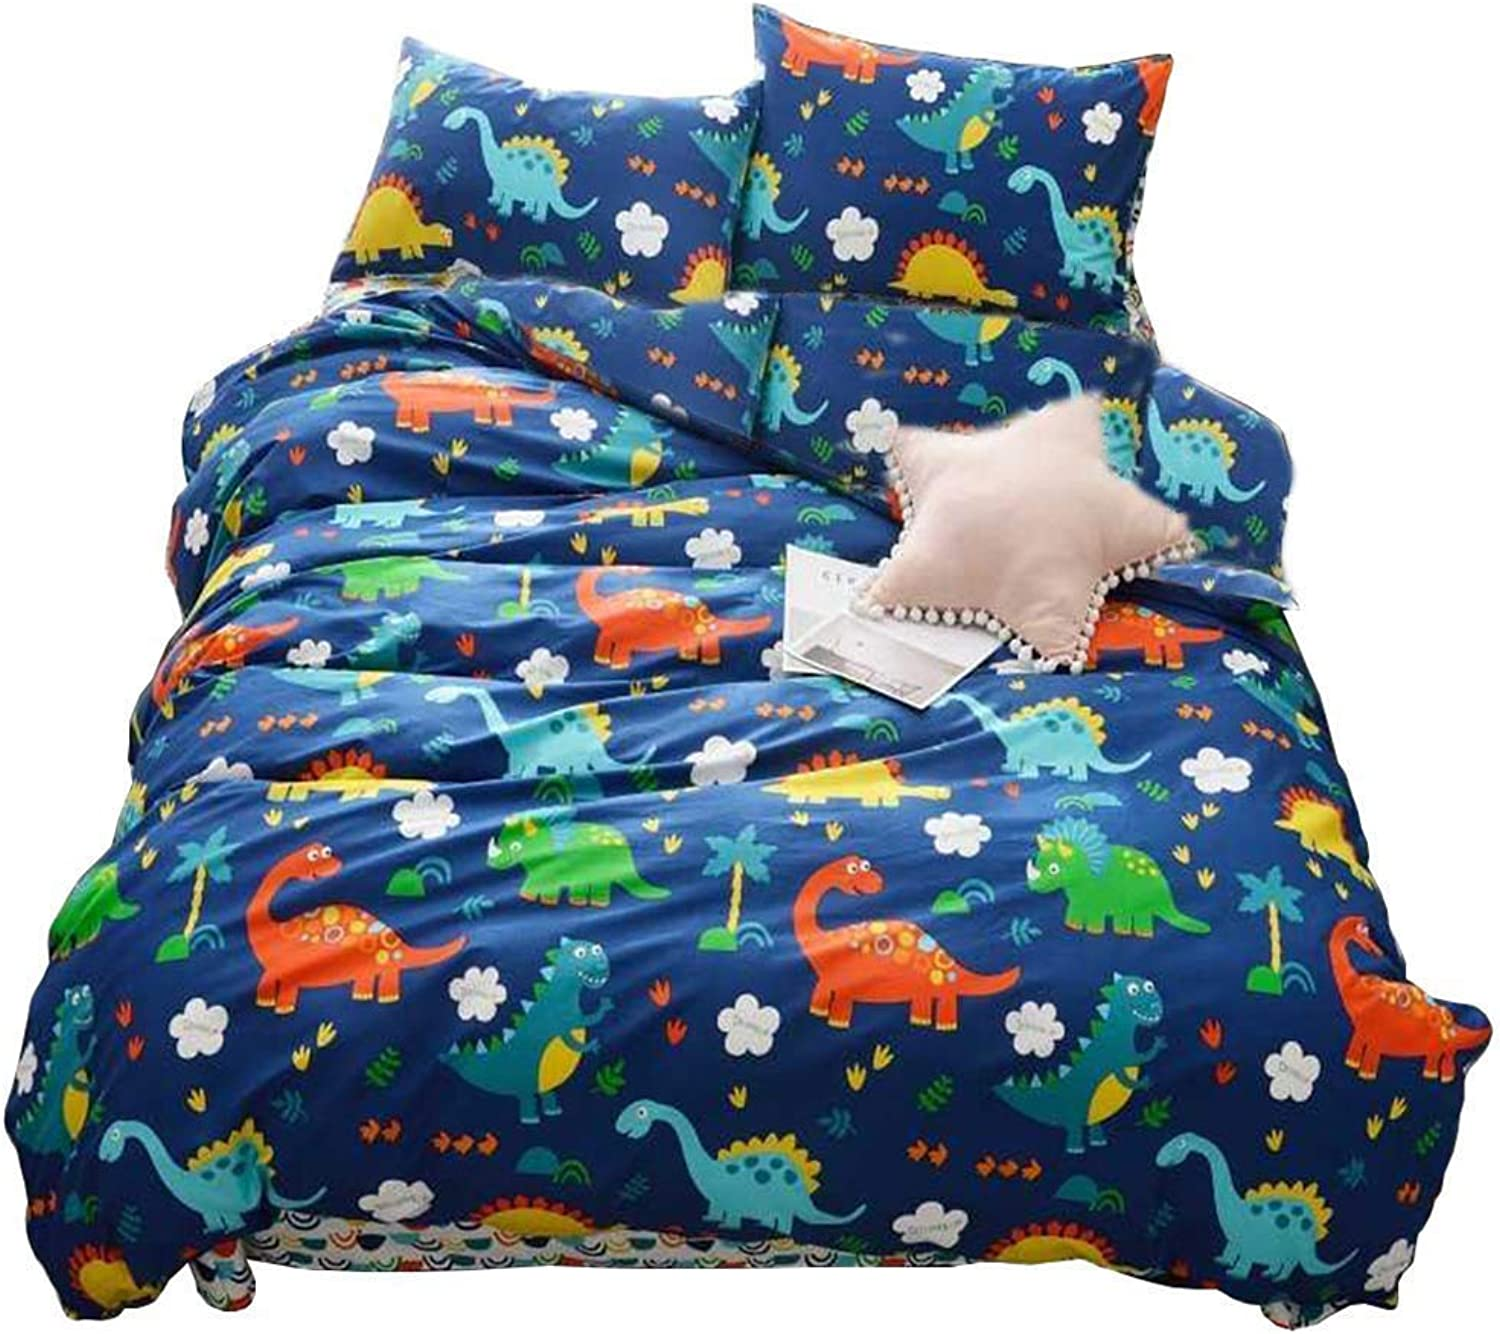 Jane yre Cute Cartoon Dinosaur Twin Bedding Set for Kids Students 100% Cotton 3 Pieces Reversible Duvet Cover Set Dinosaur Pattern Boys Girls Twin Size Red bluee Yellow Green colorful